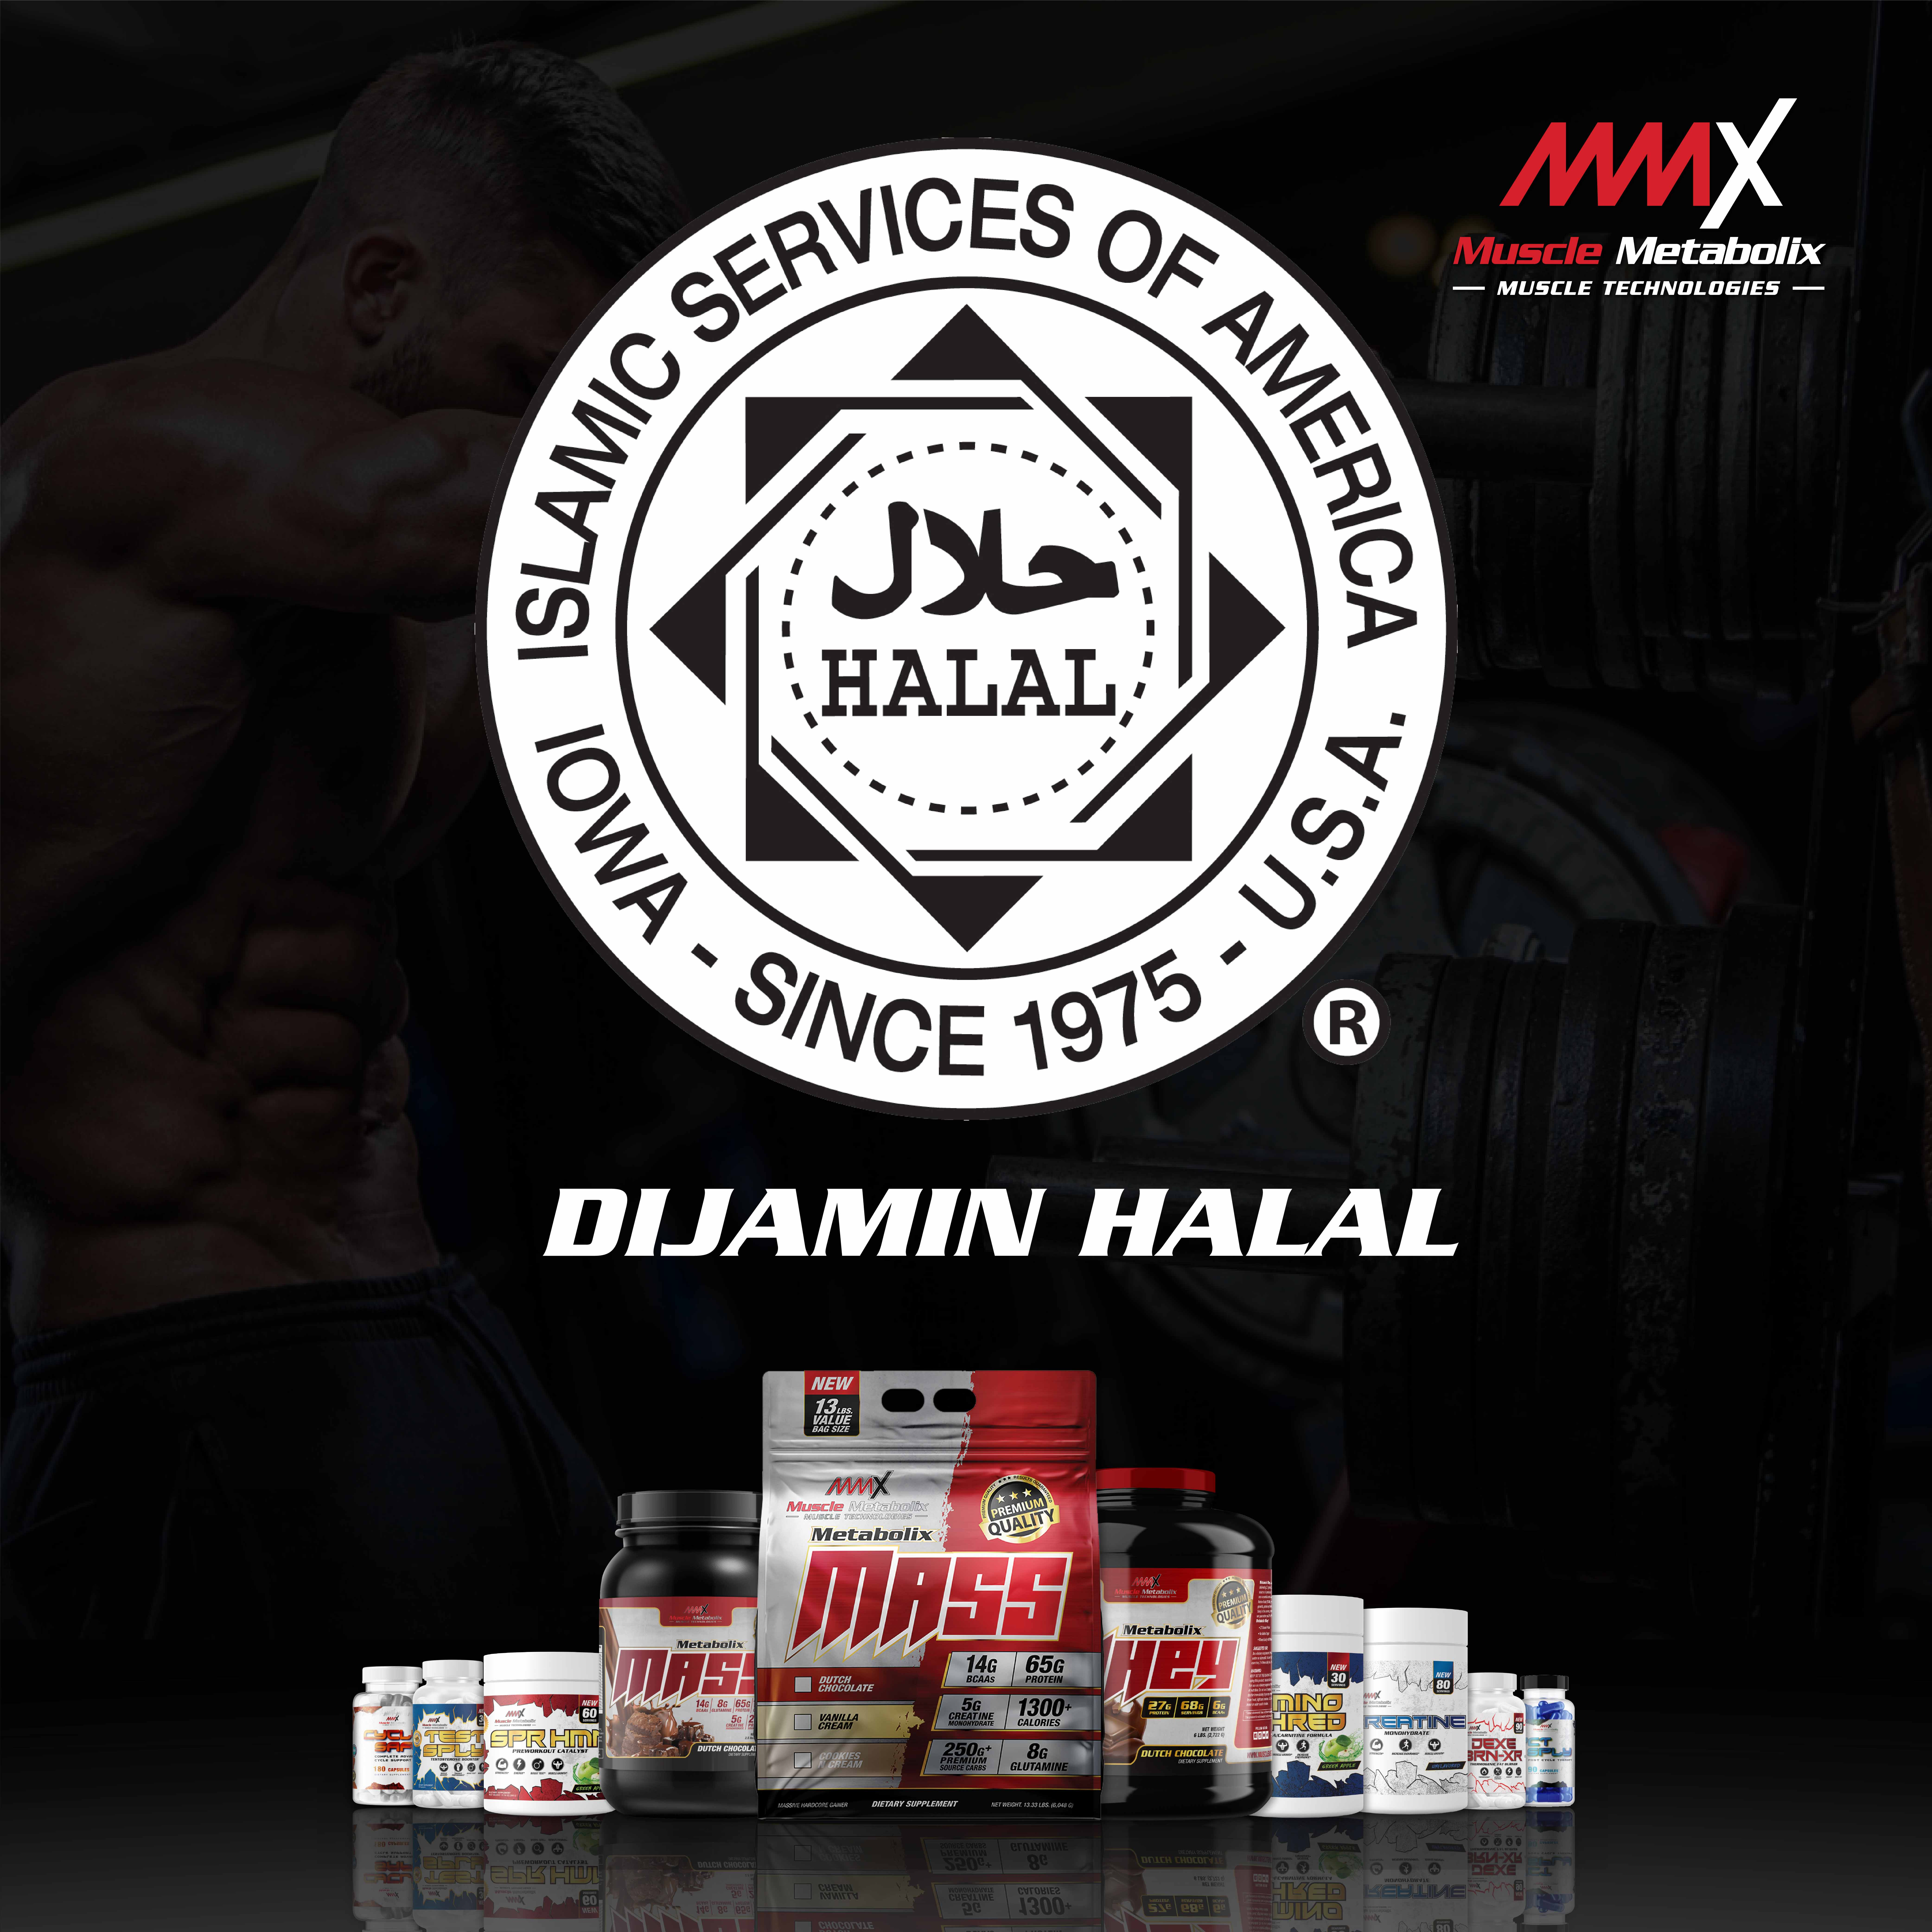 MMX whey and Mass and all MMX products is halal